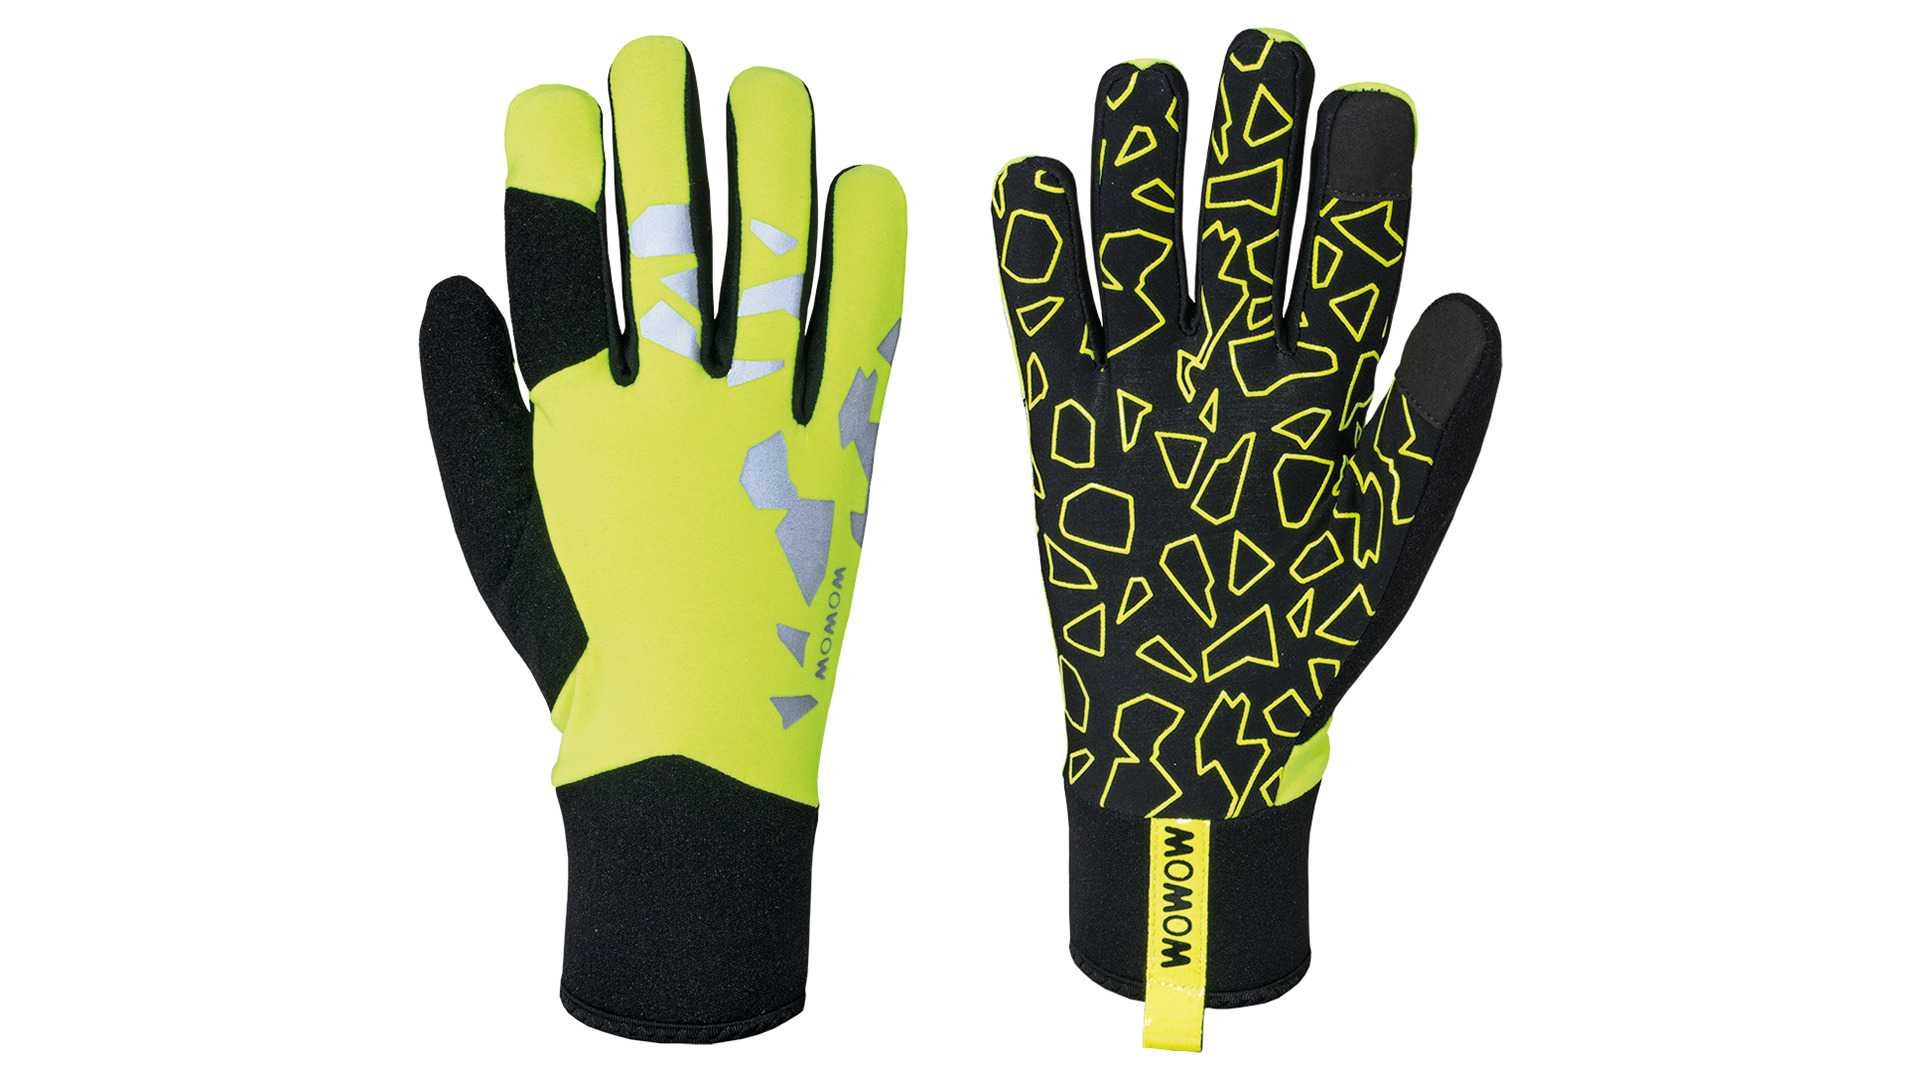 4c3aba26476 Wowow Reflecterende handschoen thunder yellow, size s - 013264